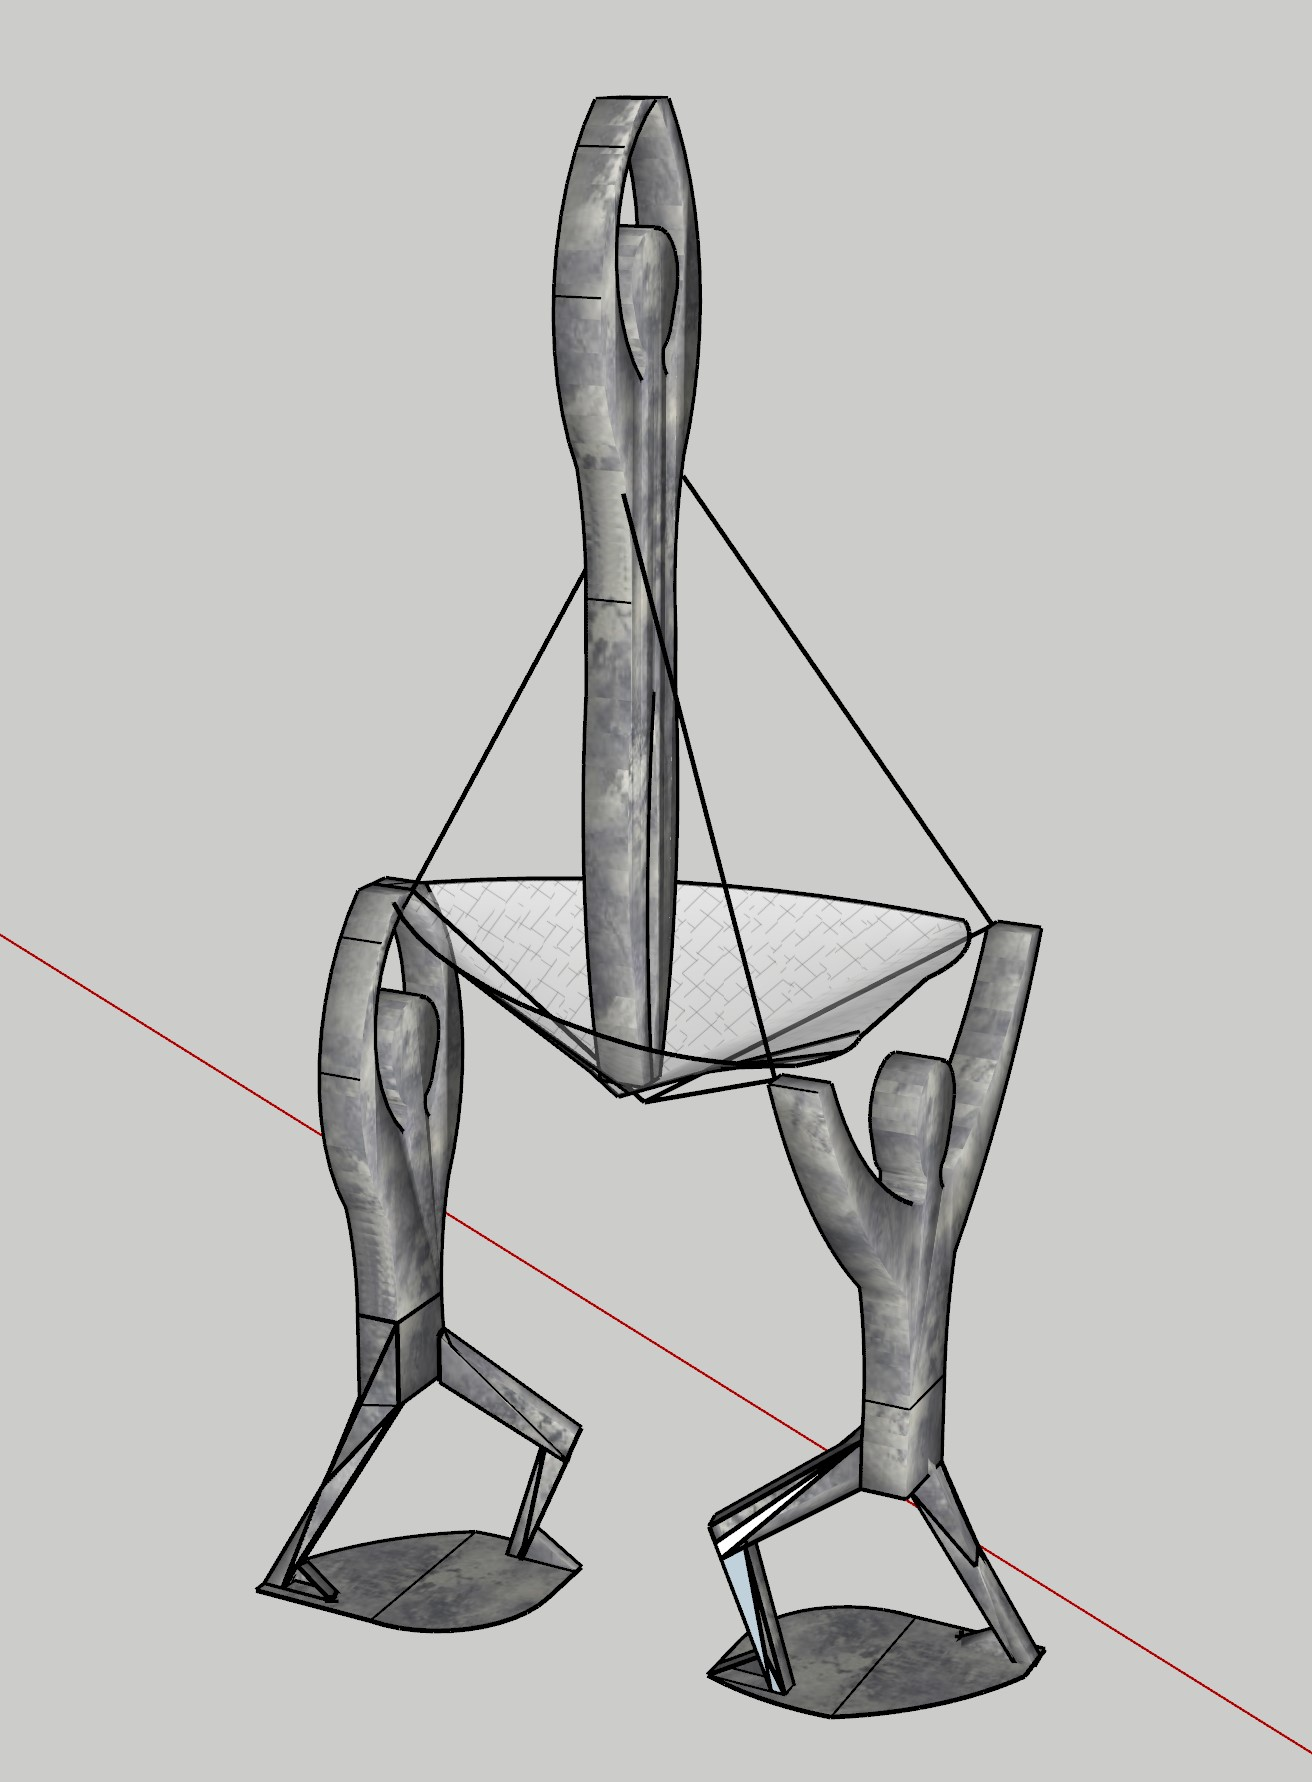 Elevate- a Tensegrity Sculpture